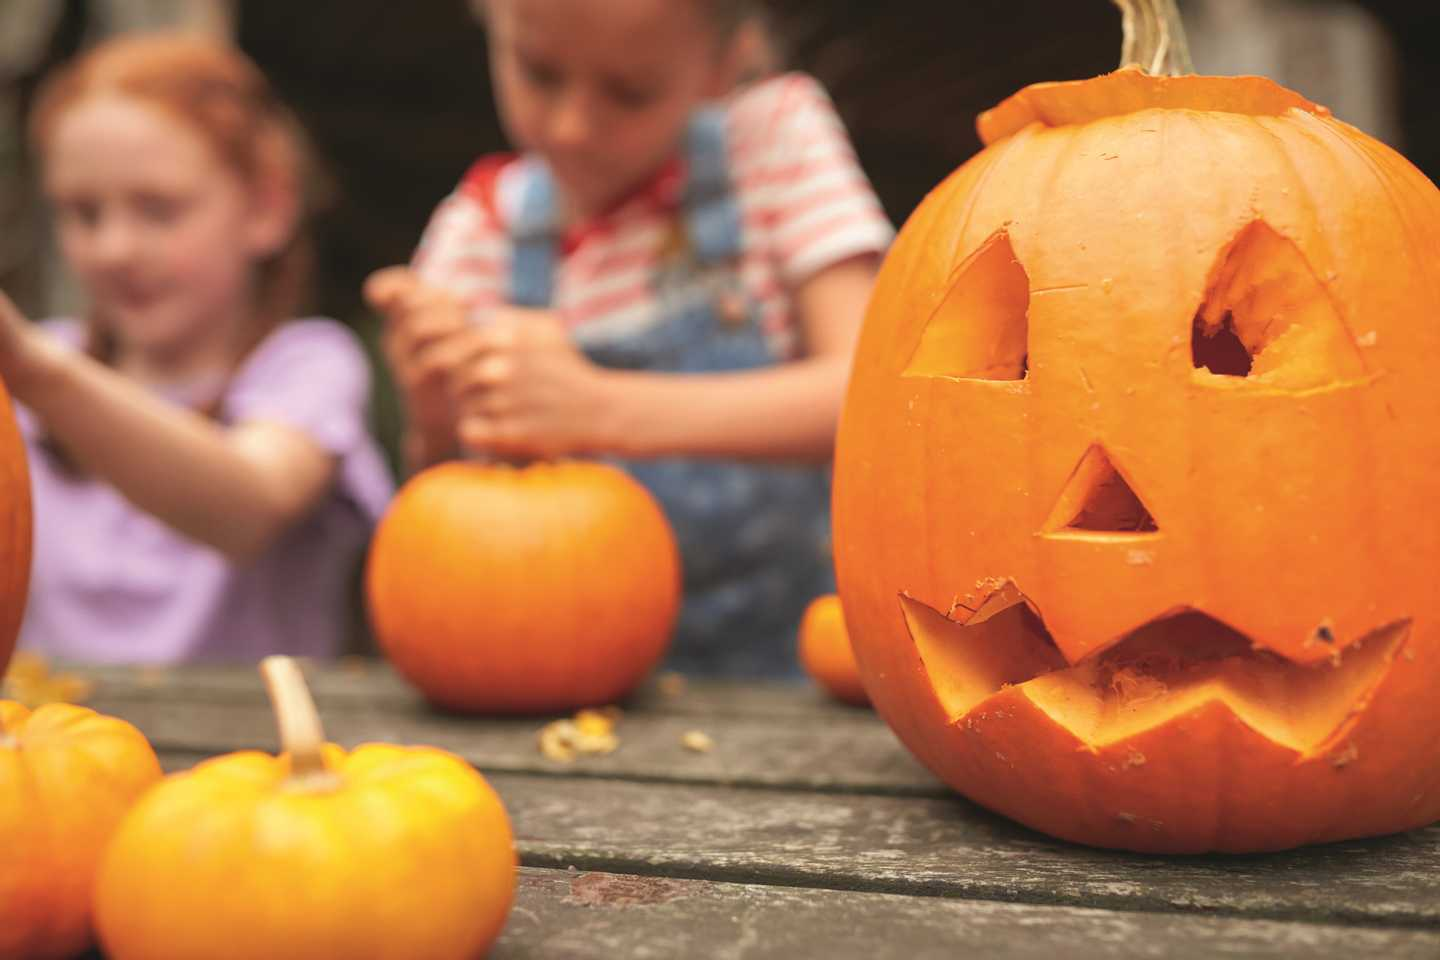 Pumpkin carving activity